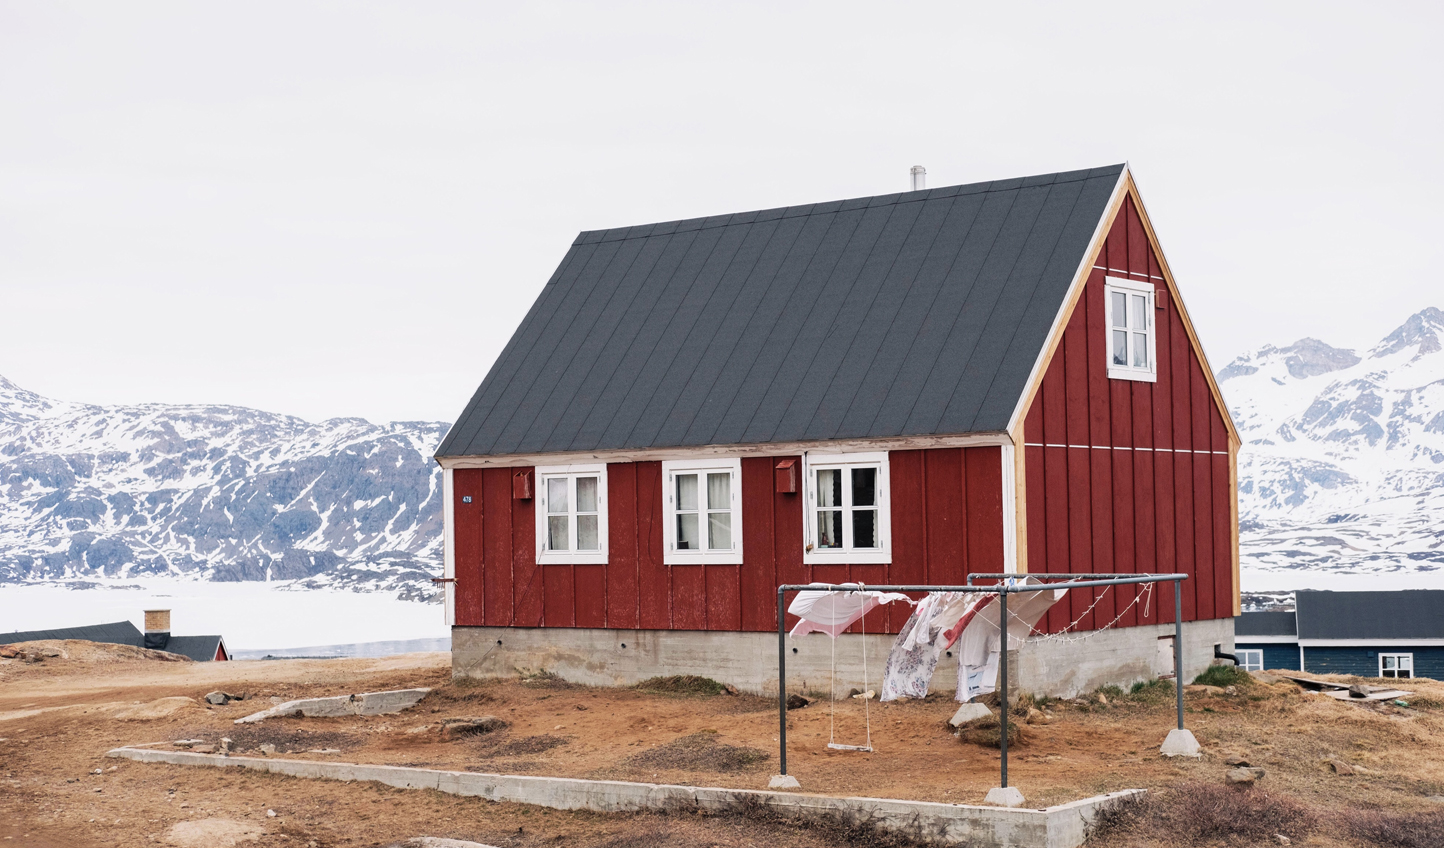 Red hut architecture can be seen all over Greeland